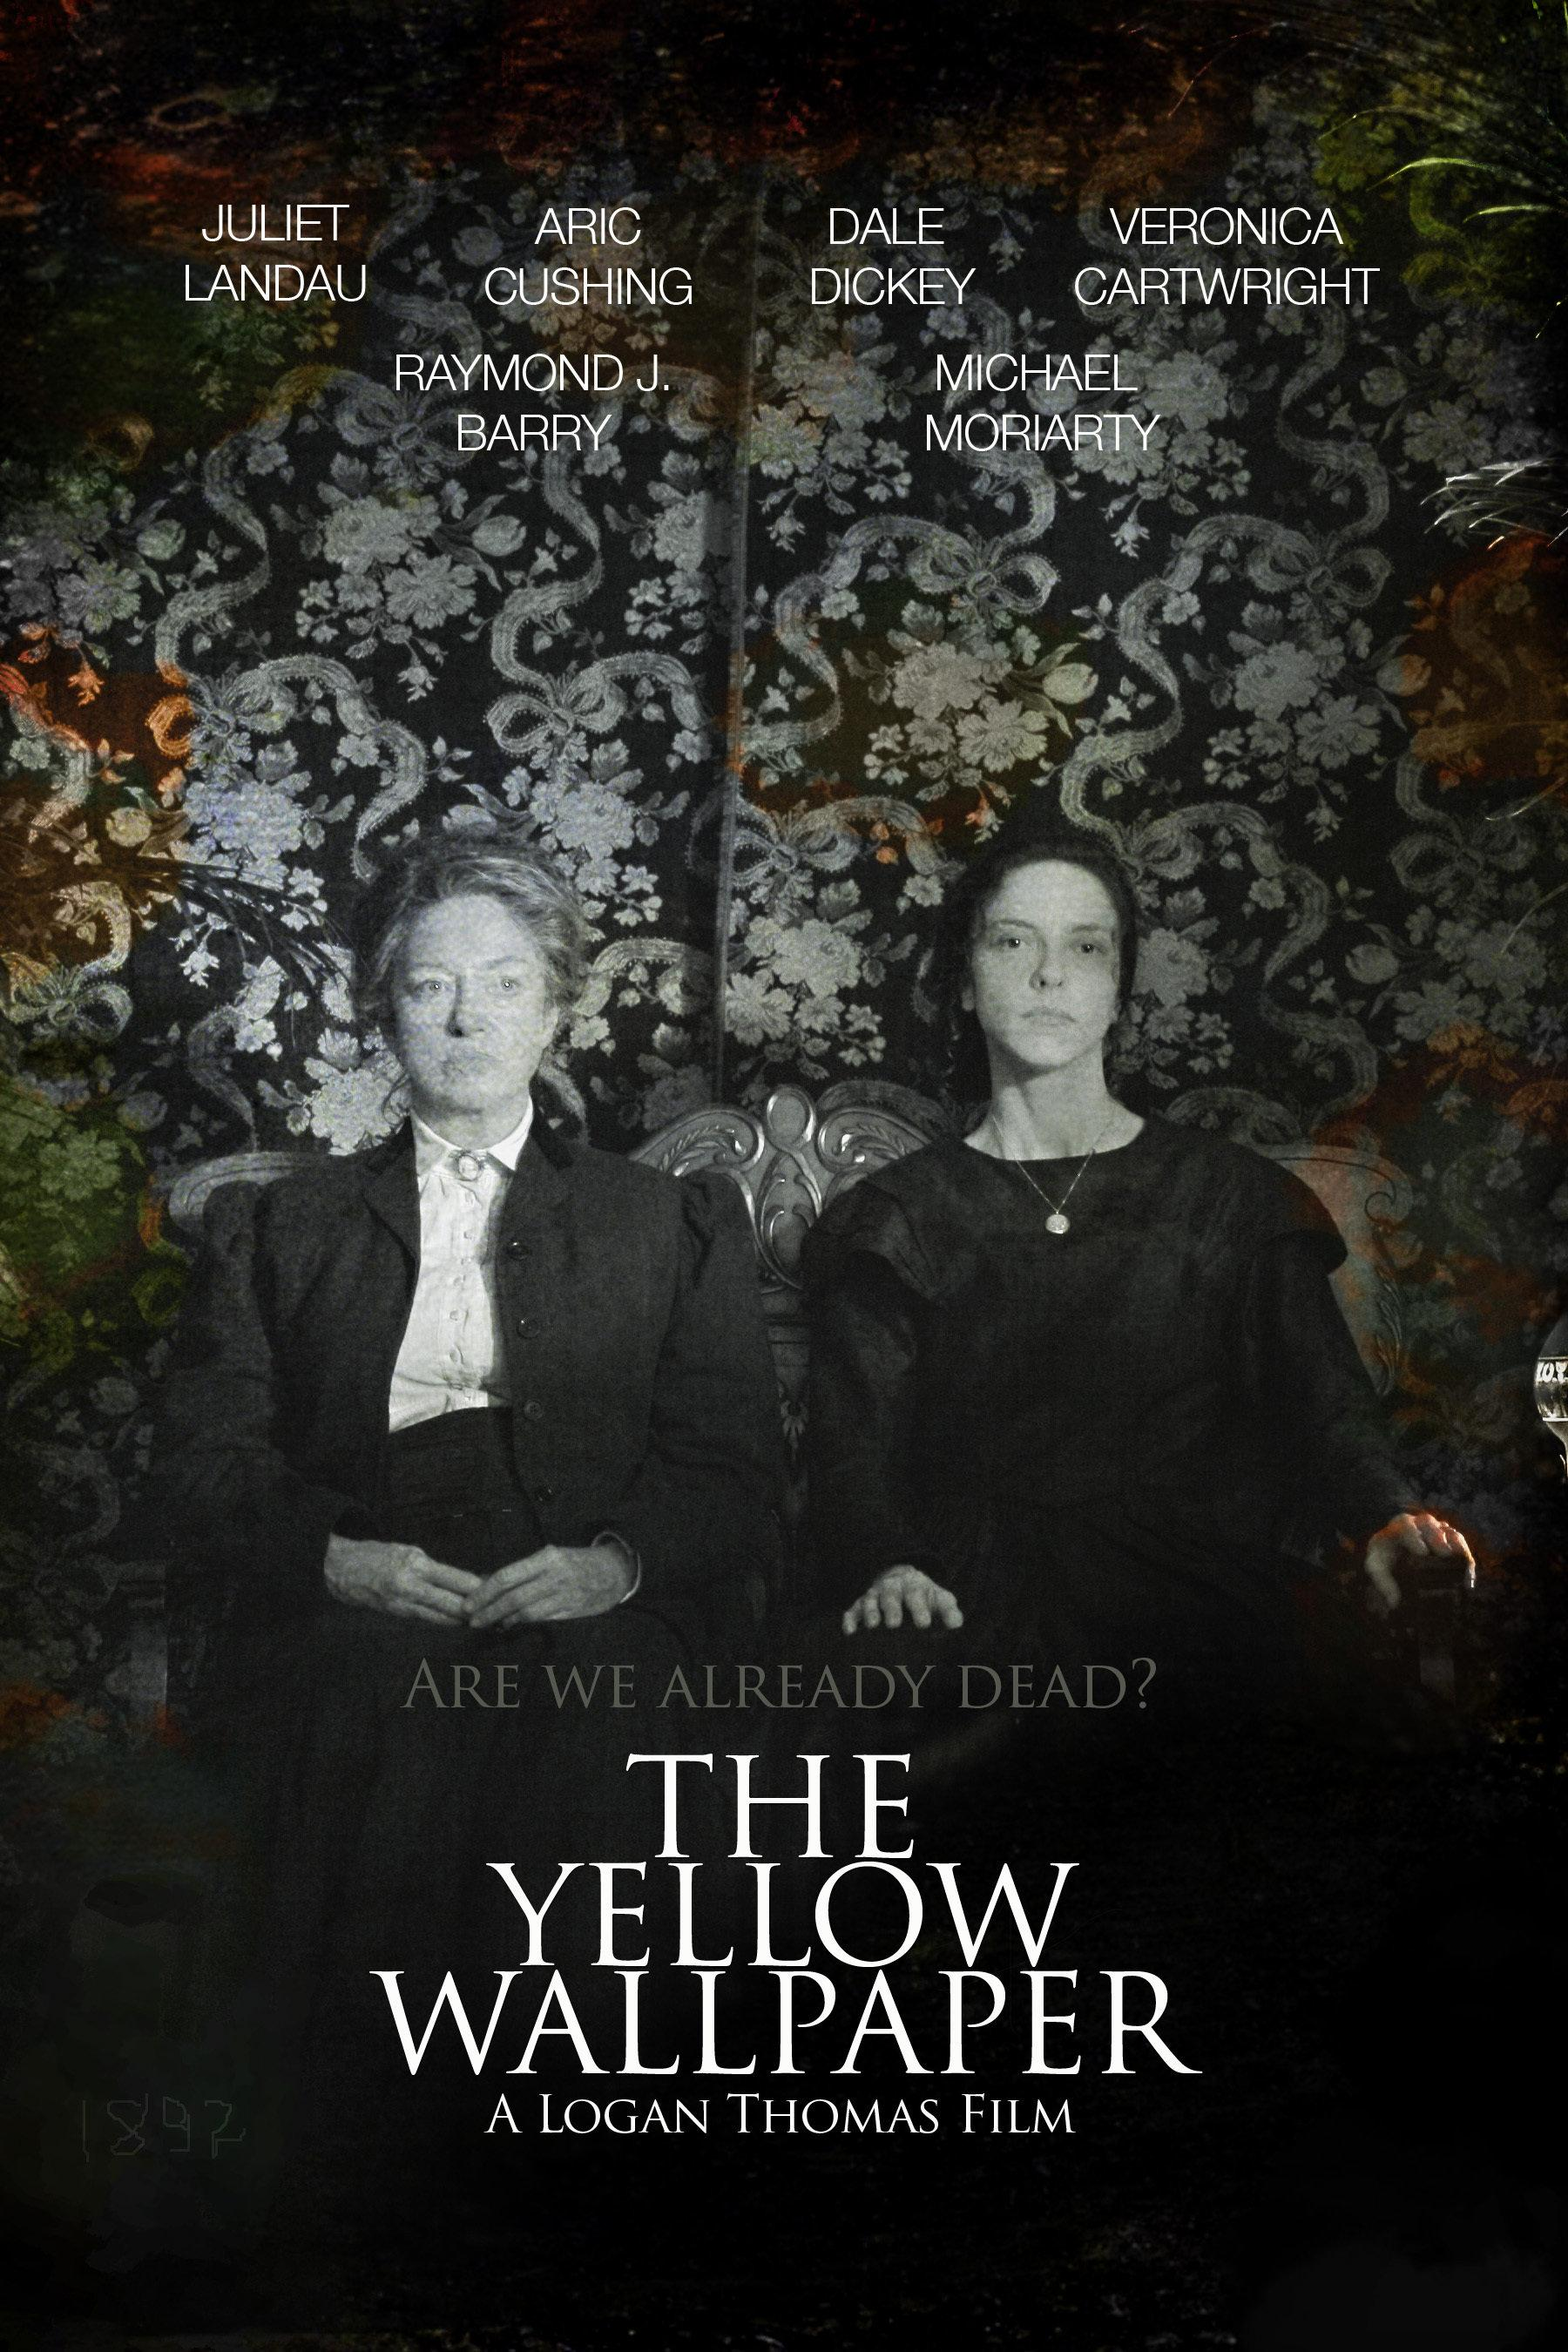 the yellow wallpaper 2012 large coverjpg 1800x2700